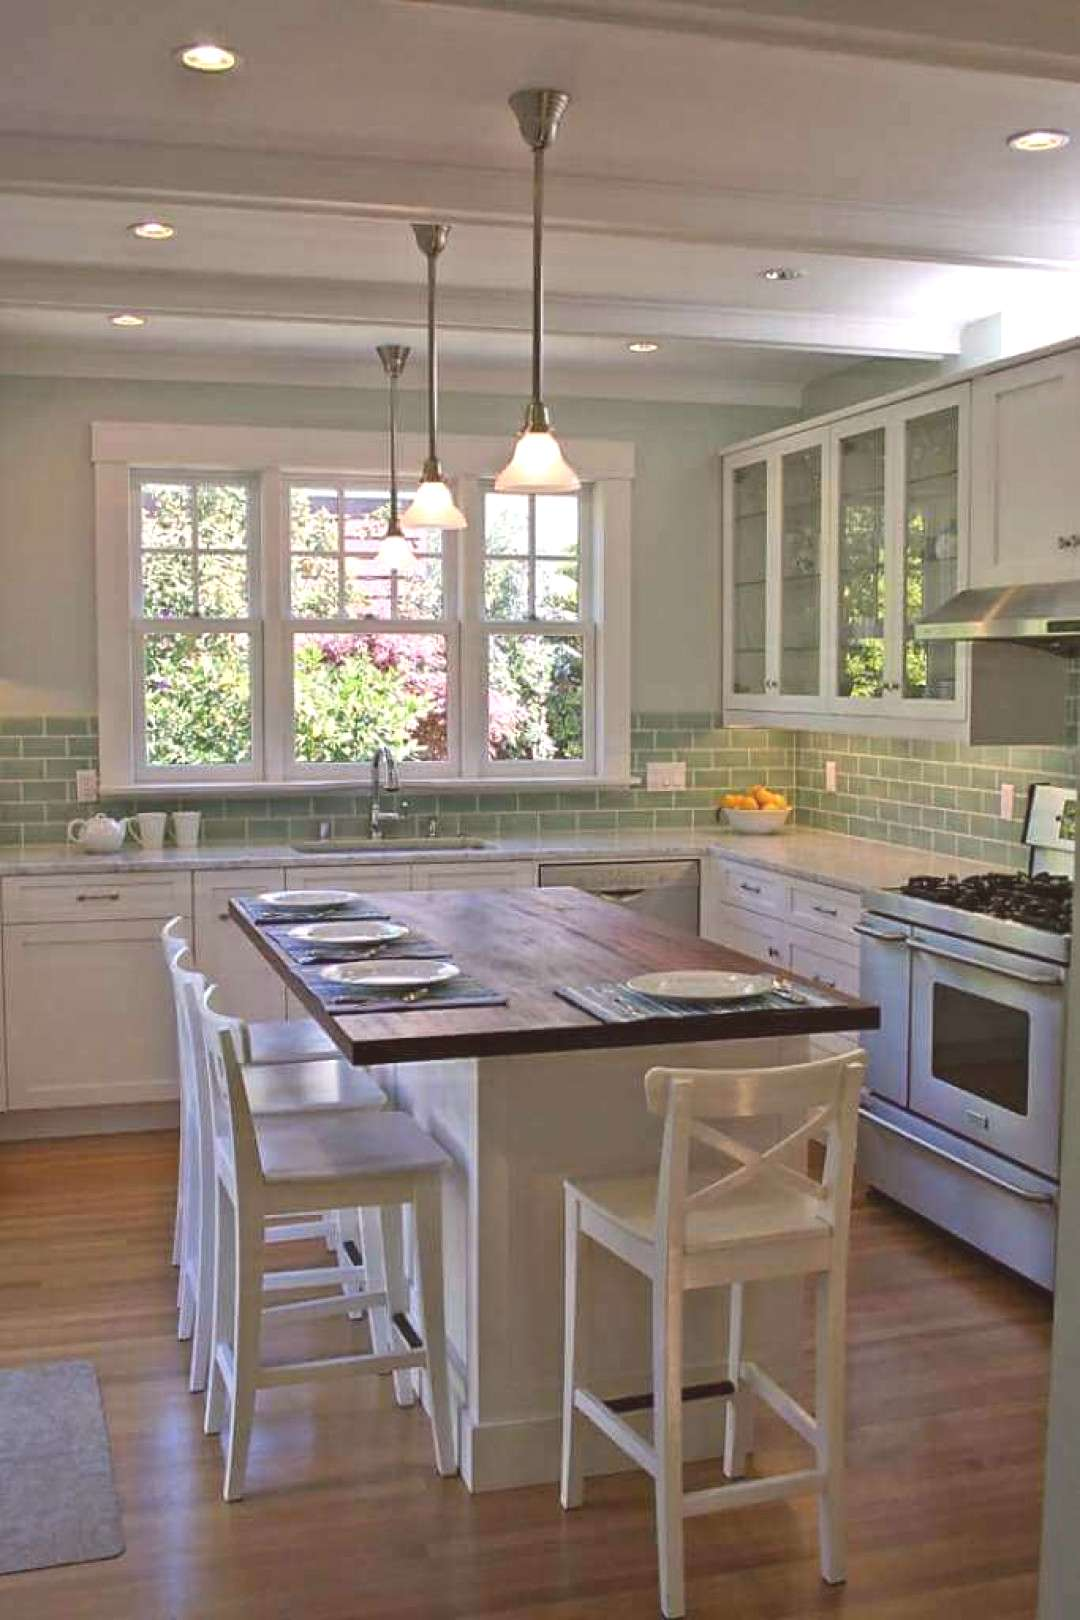 49++ reference of small kitchen island with cabinets and seating small kitchen island with cabinets